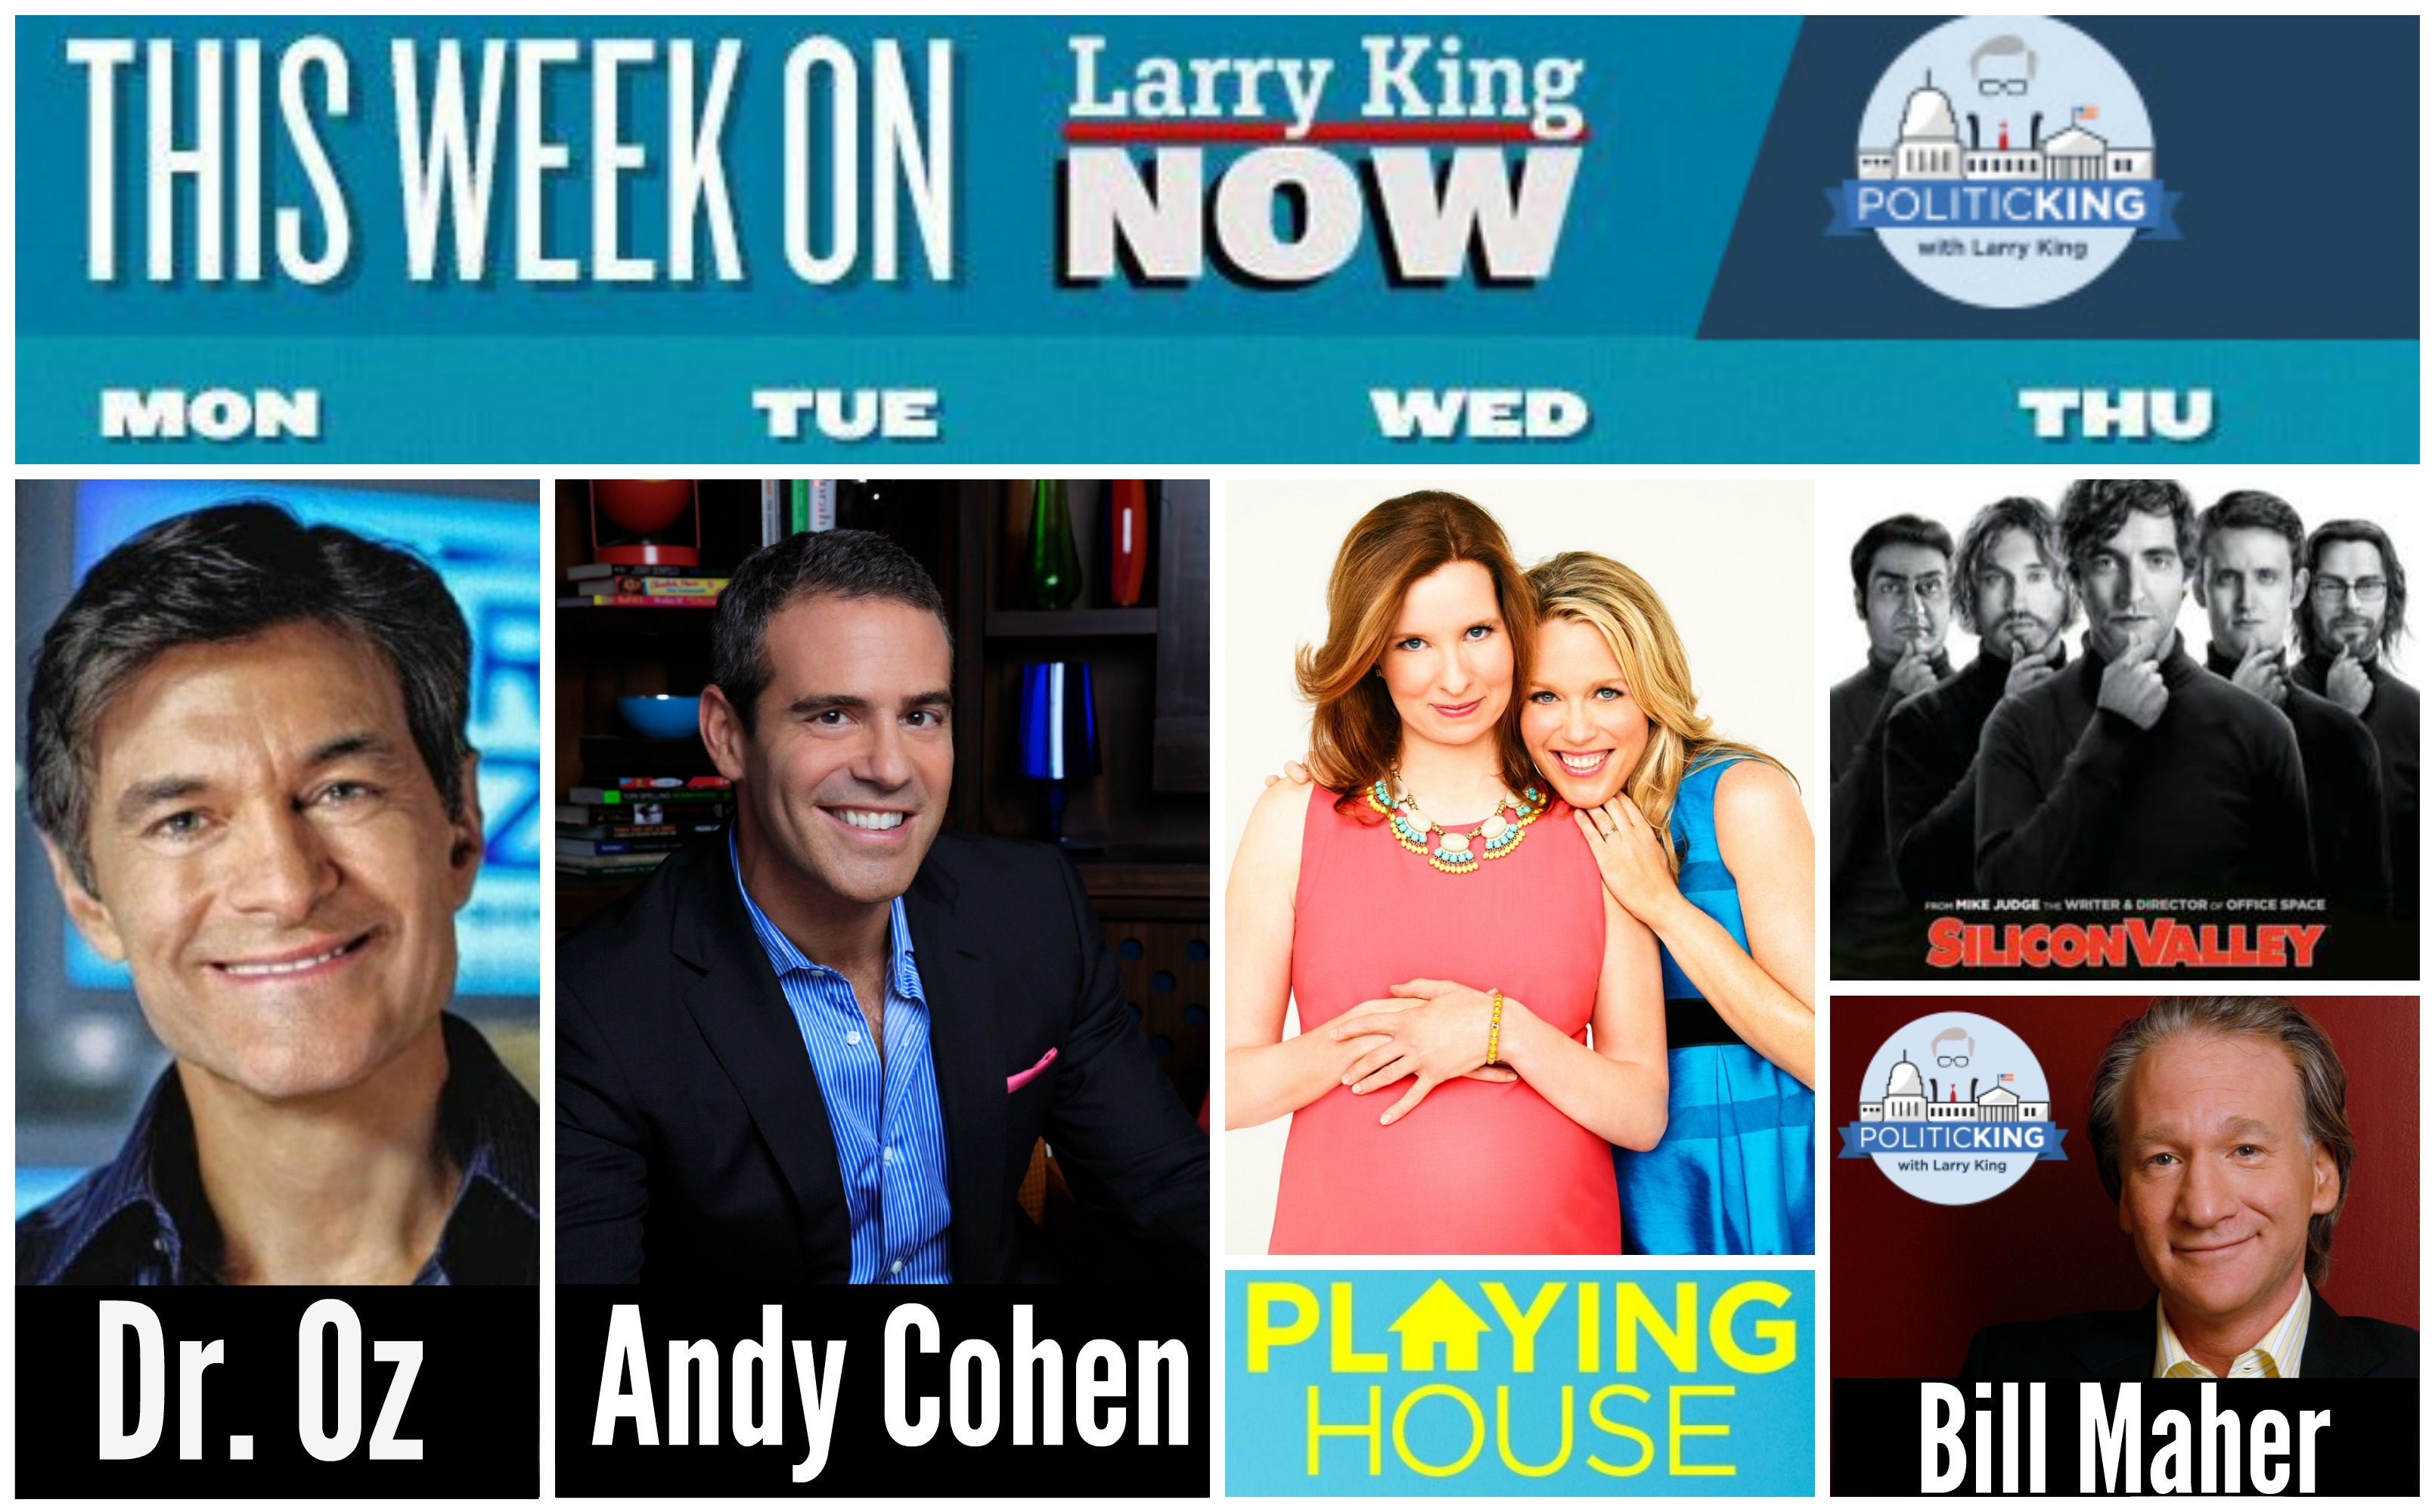 This Week on 'Larry King Now' - Dr. Oz, Andy Cohen, Playing House Cast, Silicon Valley HBO cast & PoliticKING with Bill Maher